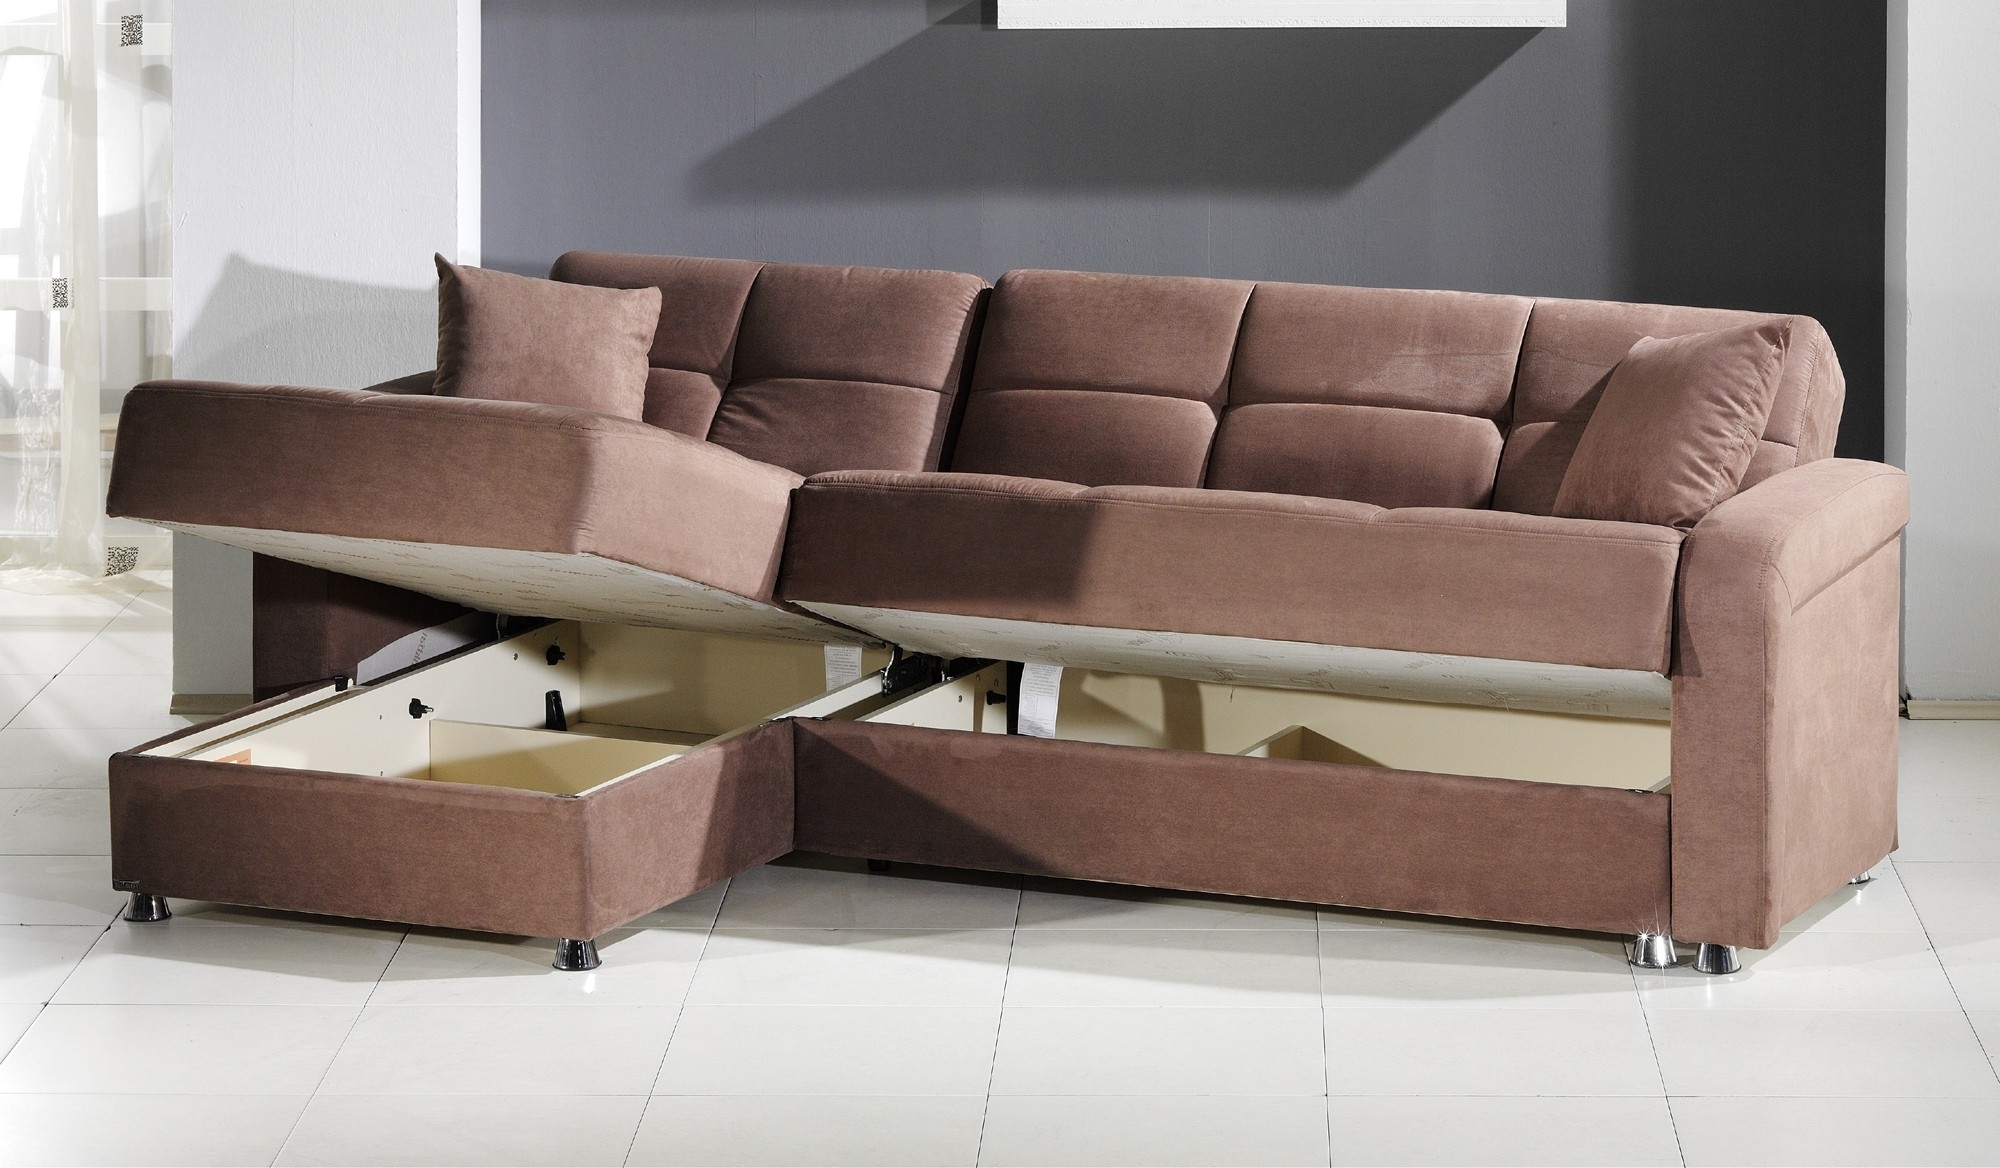 Popular Sectional Sofas With Storage In Leather Armchair And Ottoman Chaise Sofa With Storage Ottoman (View 3 of 20)